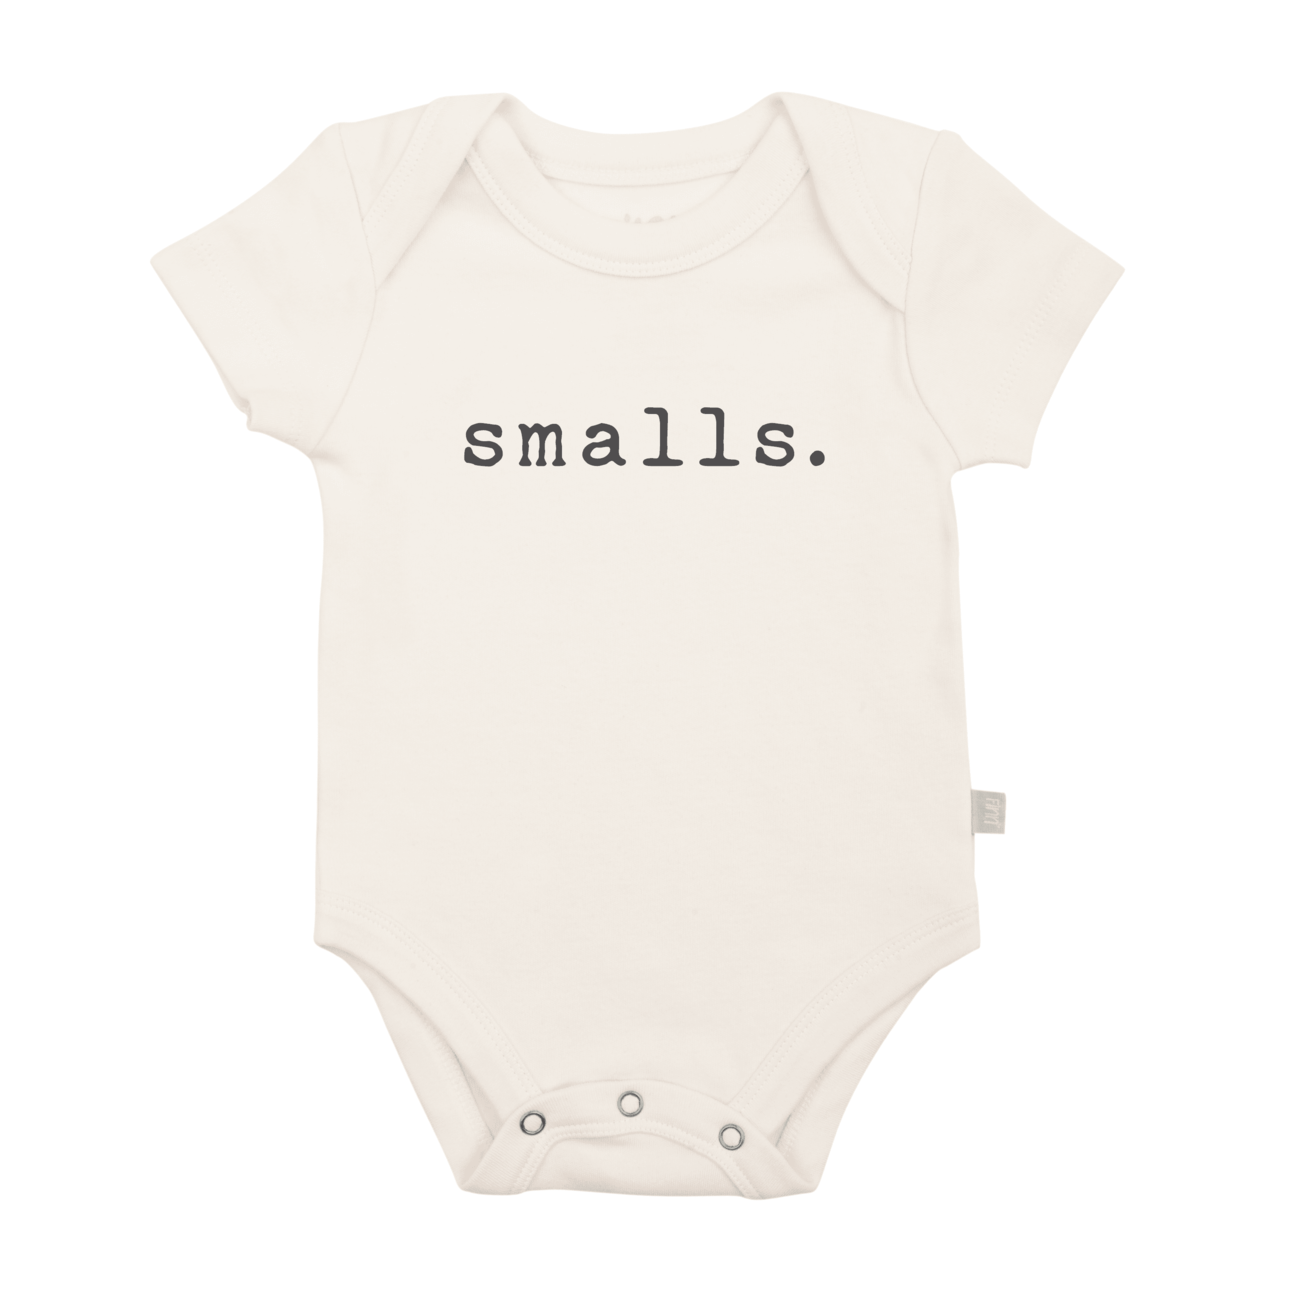 Finn + Emma finn + emma Graphic Bodysuit - Smalls (white background)